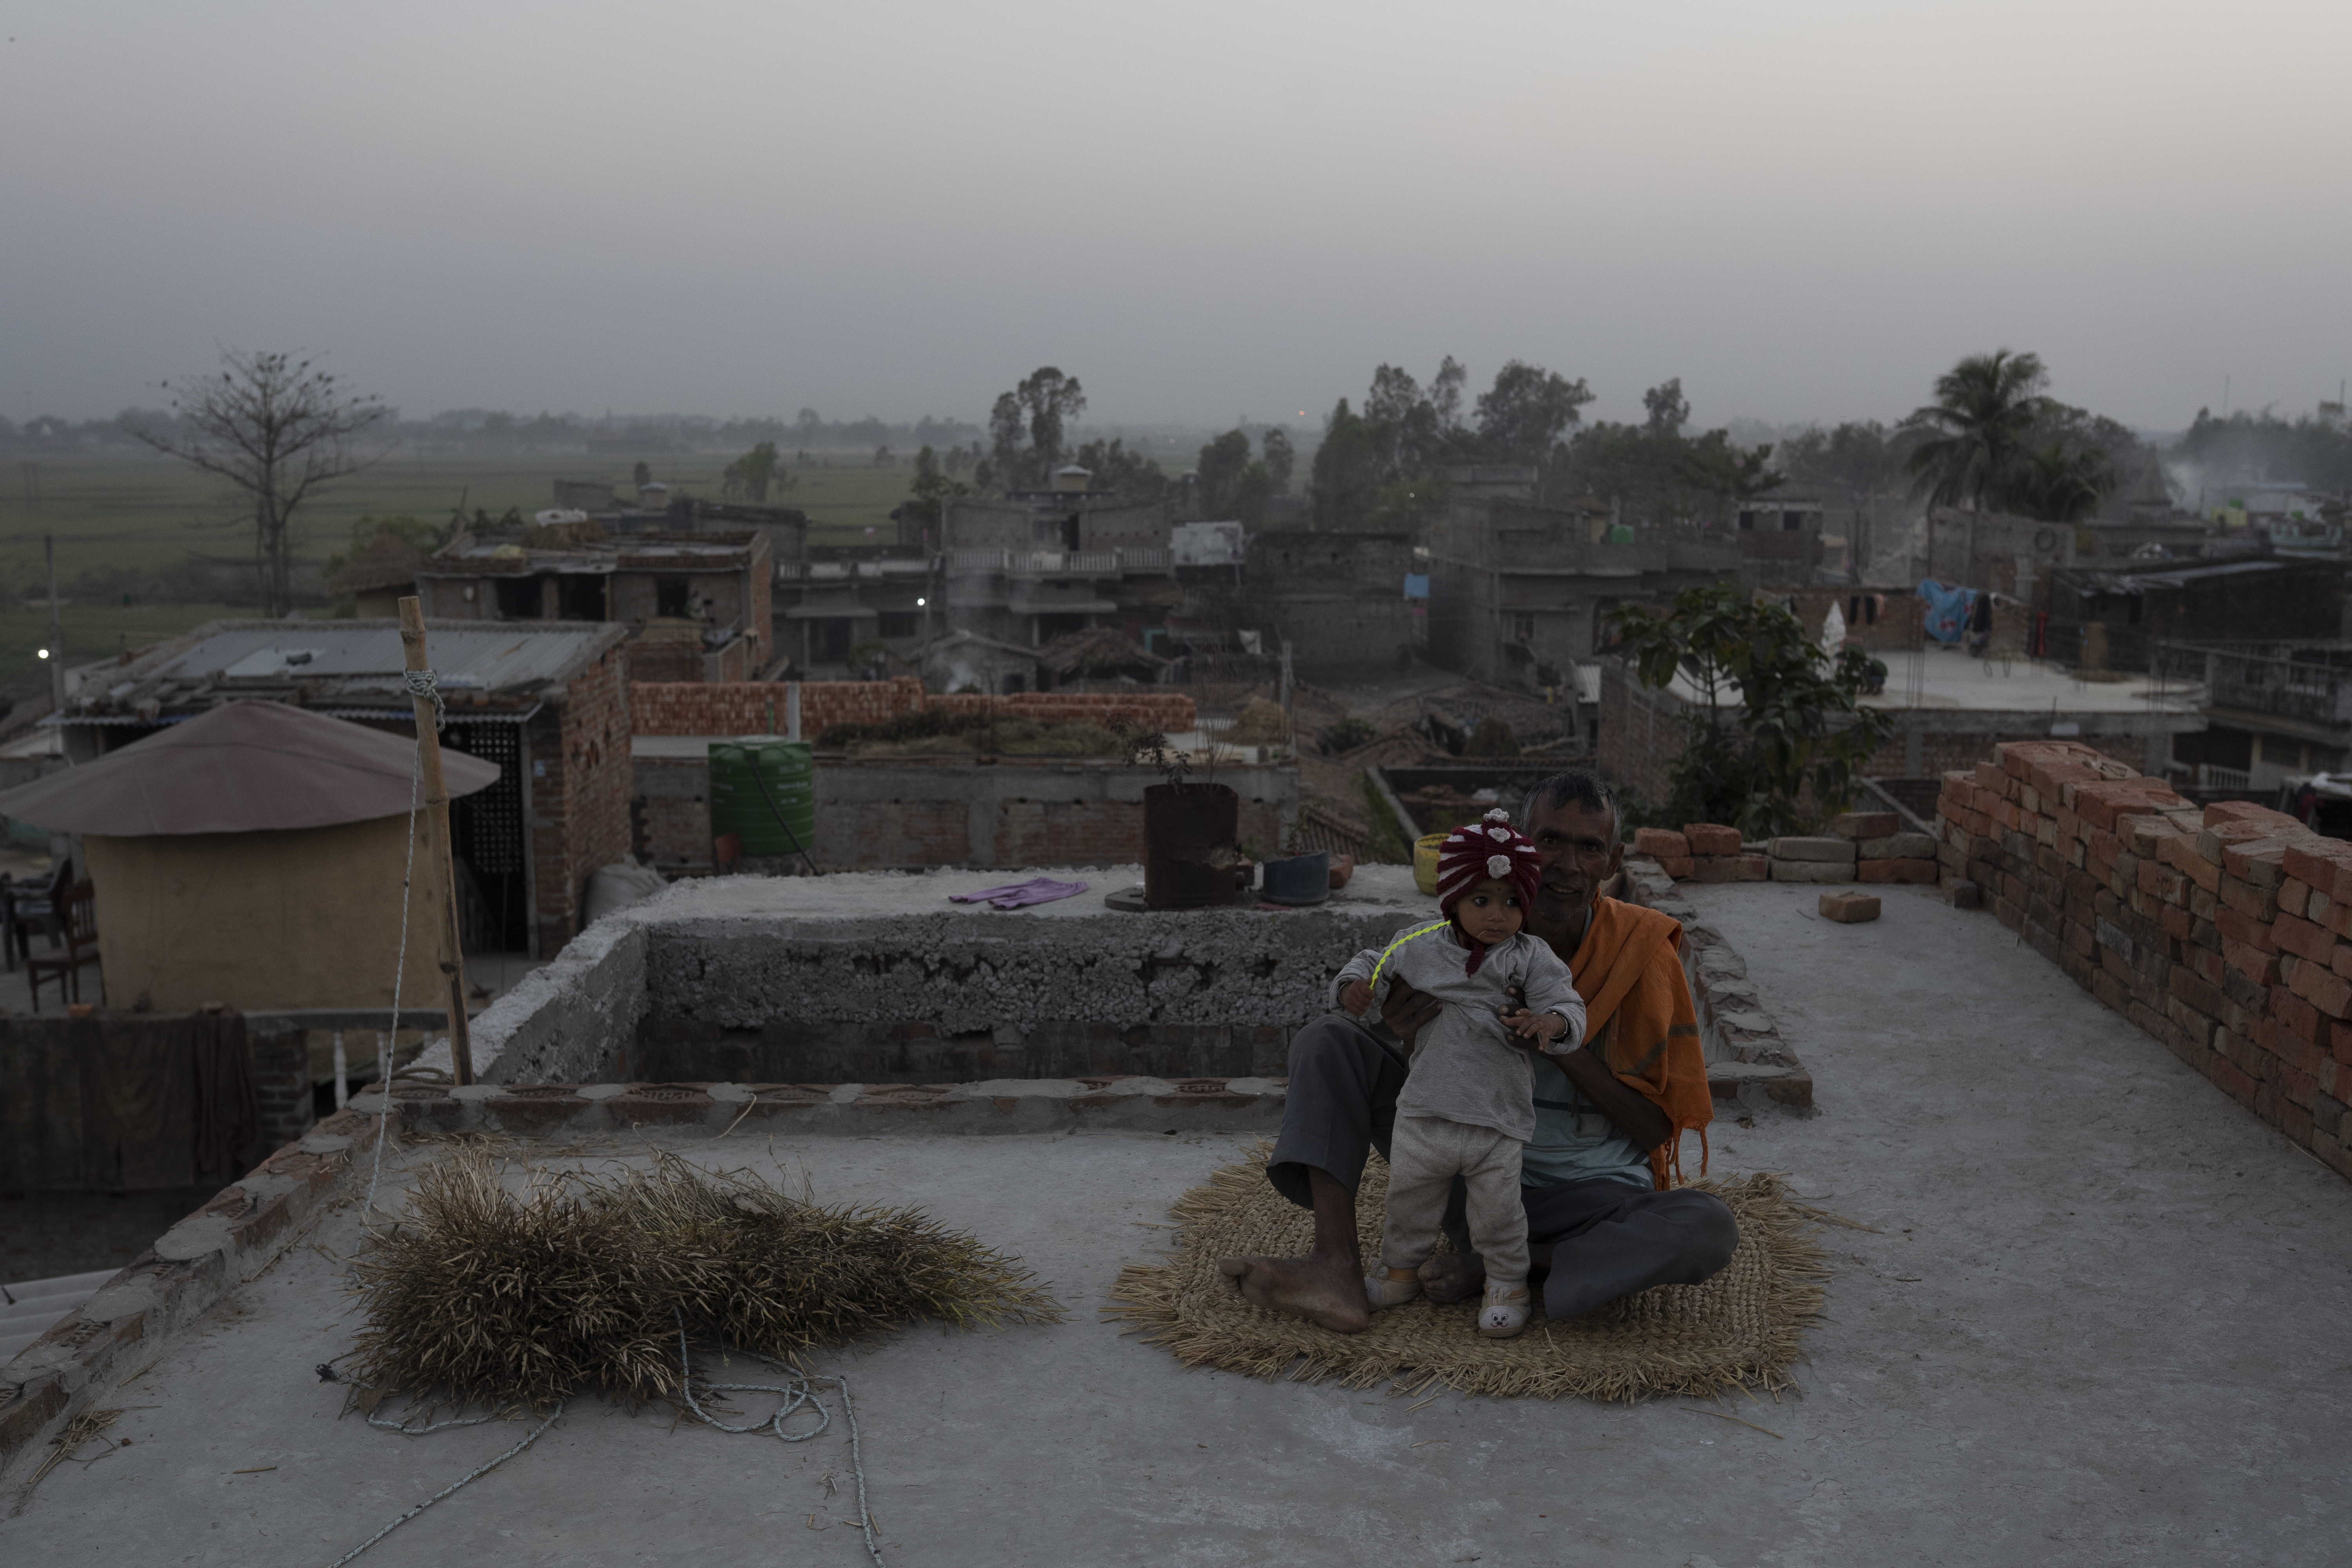 A child sits with a man on a rooftop in Sugauli Birta, an agrarian community near the Indian border of Nepal.